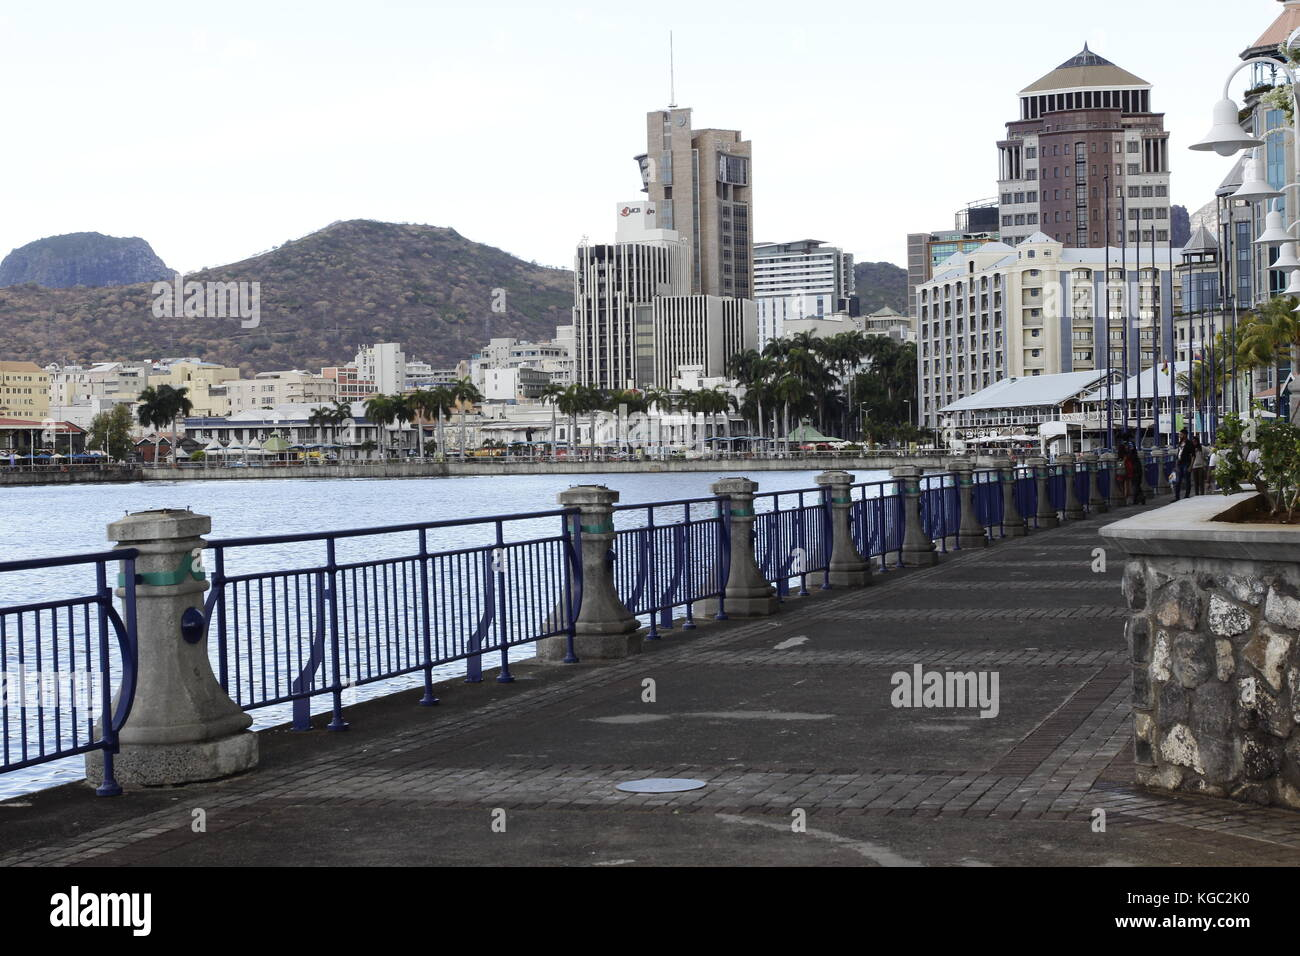 Le Caudan Waterfront is a commercial development in Port Louis, the capital city of Mauritius. It includes shops, - Stock Image